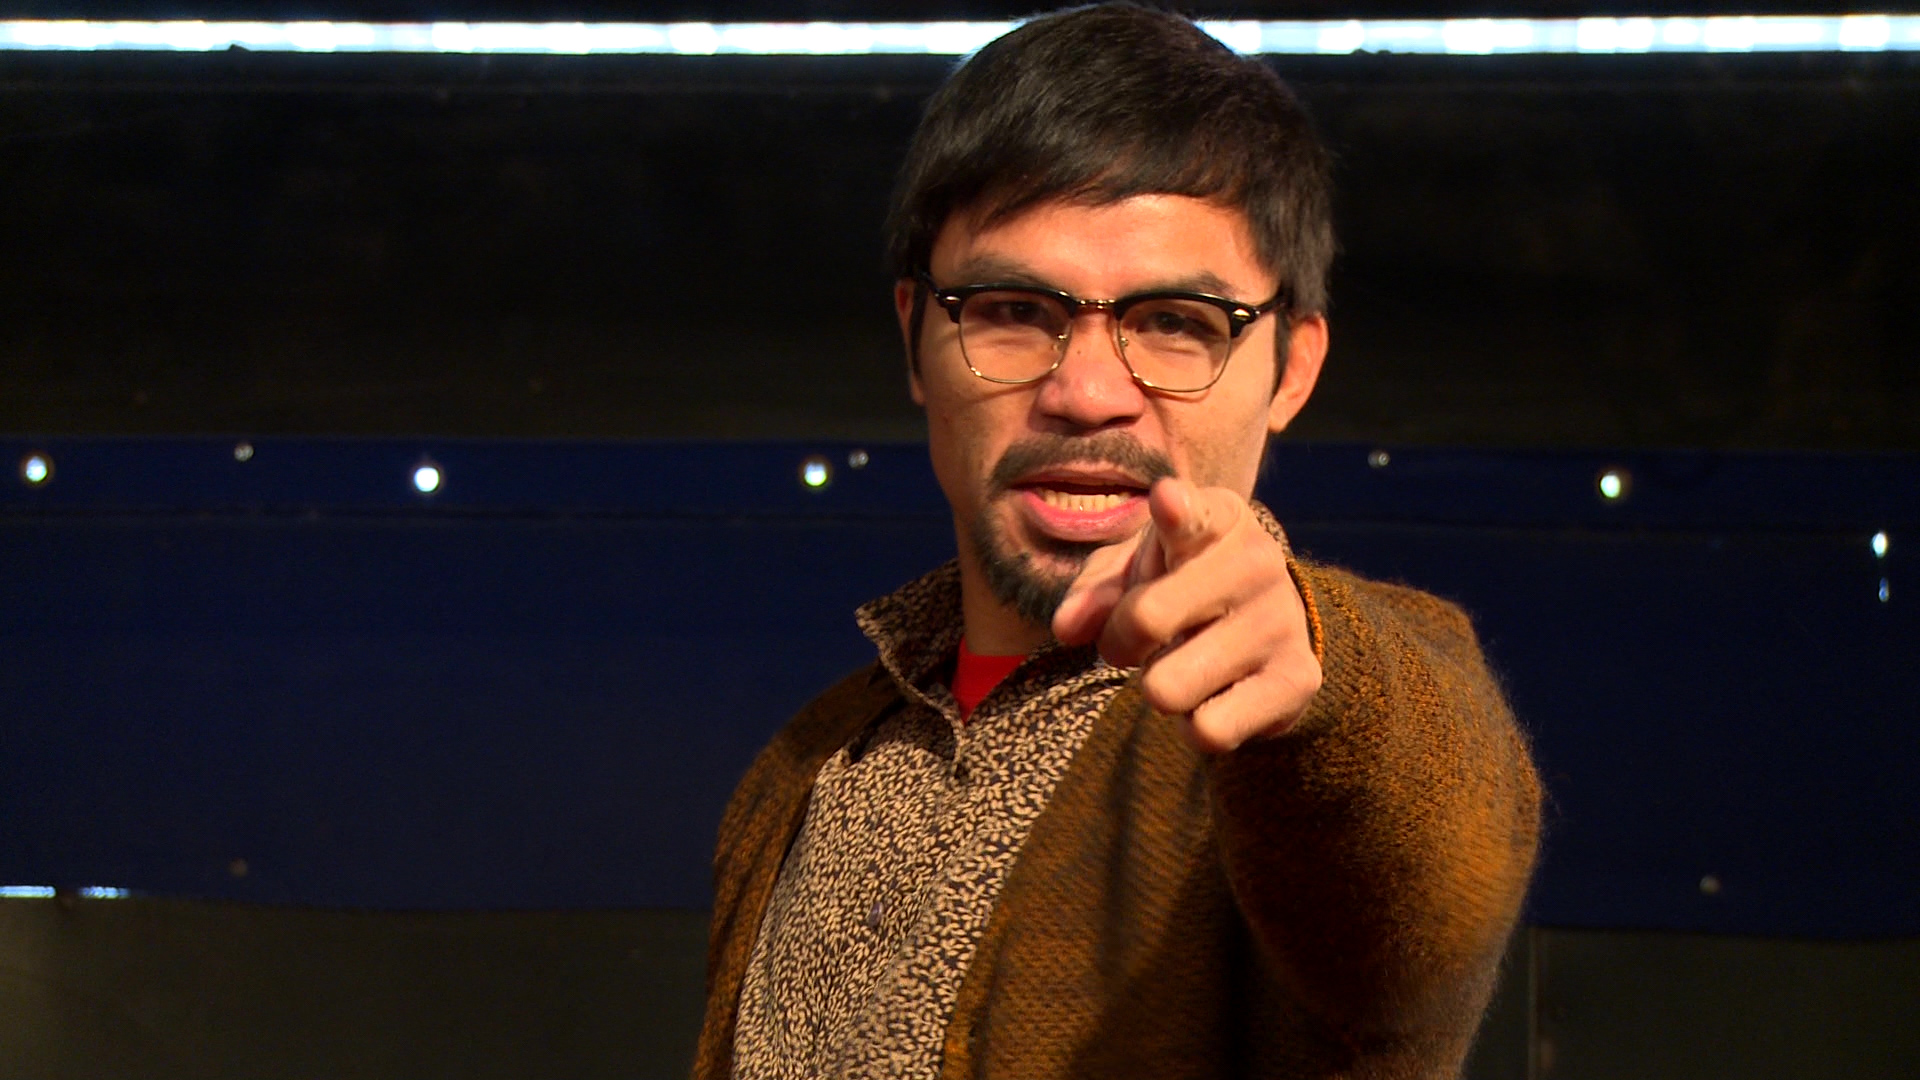 Funny Pacquiao picture pictures forecast dress for autumn in 2019